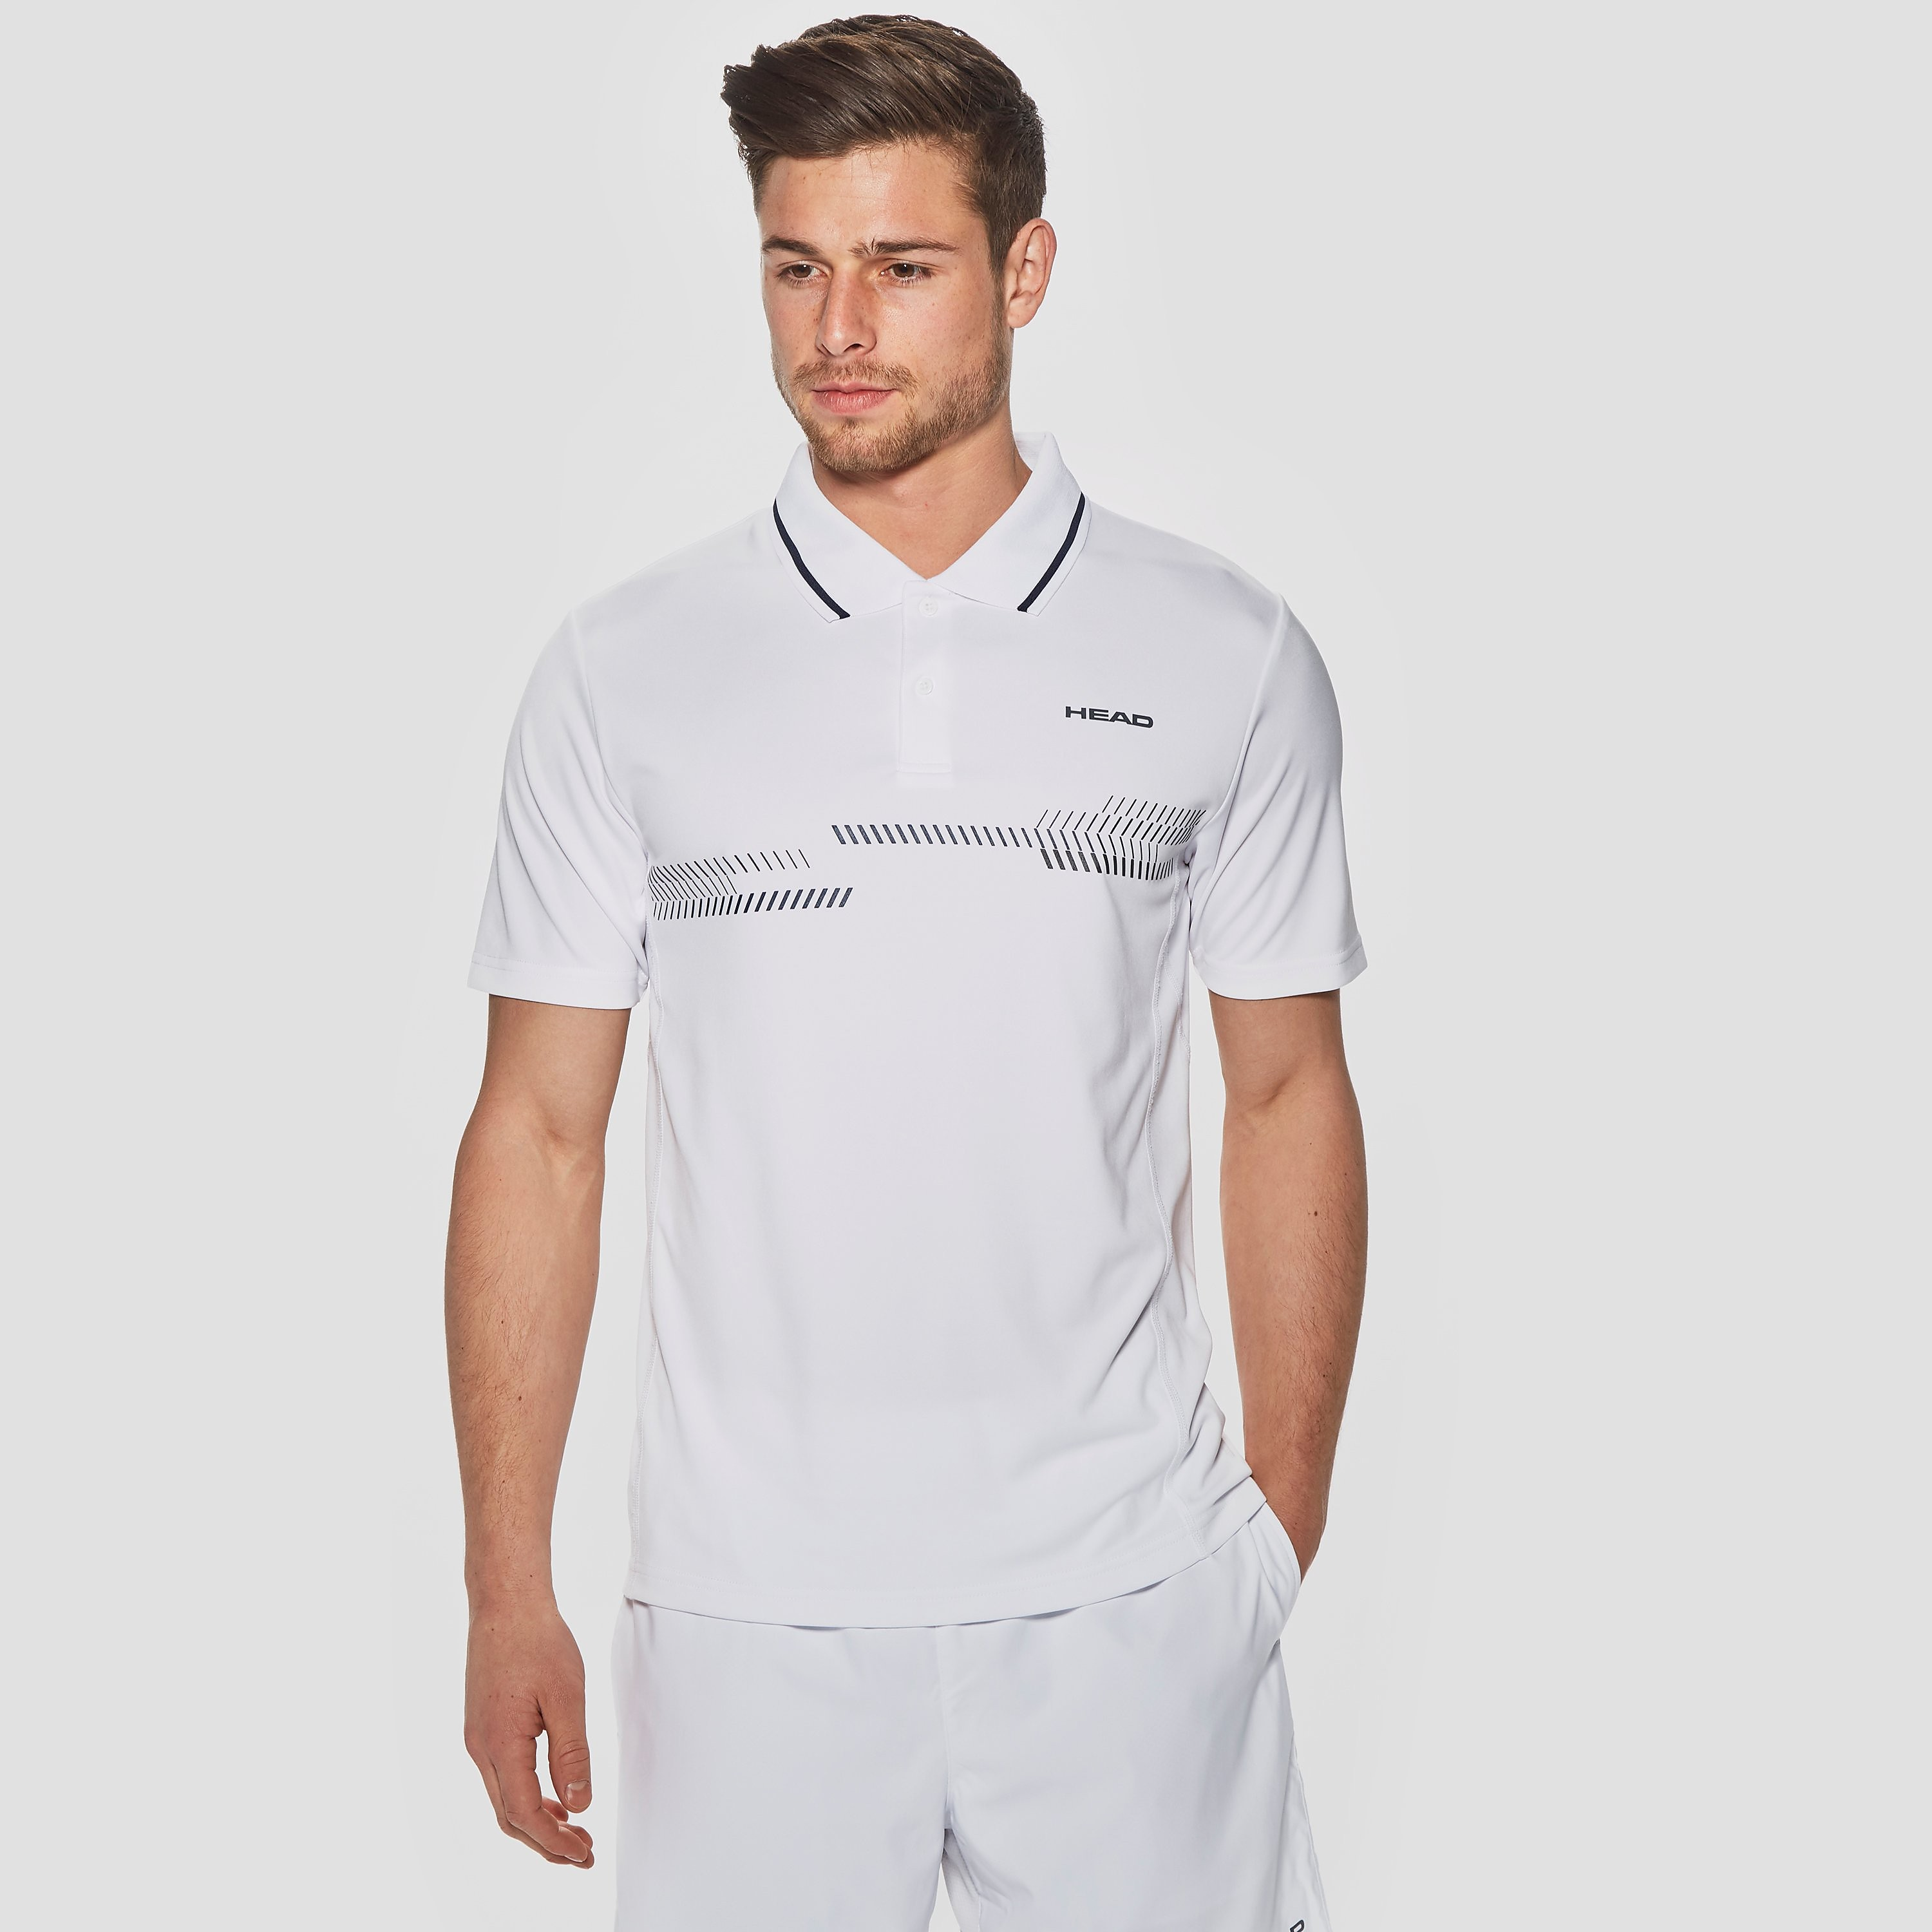 Head Club Technical Men's Tennis Polo Shirt